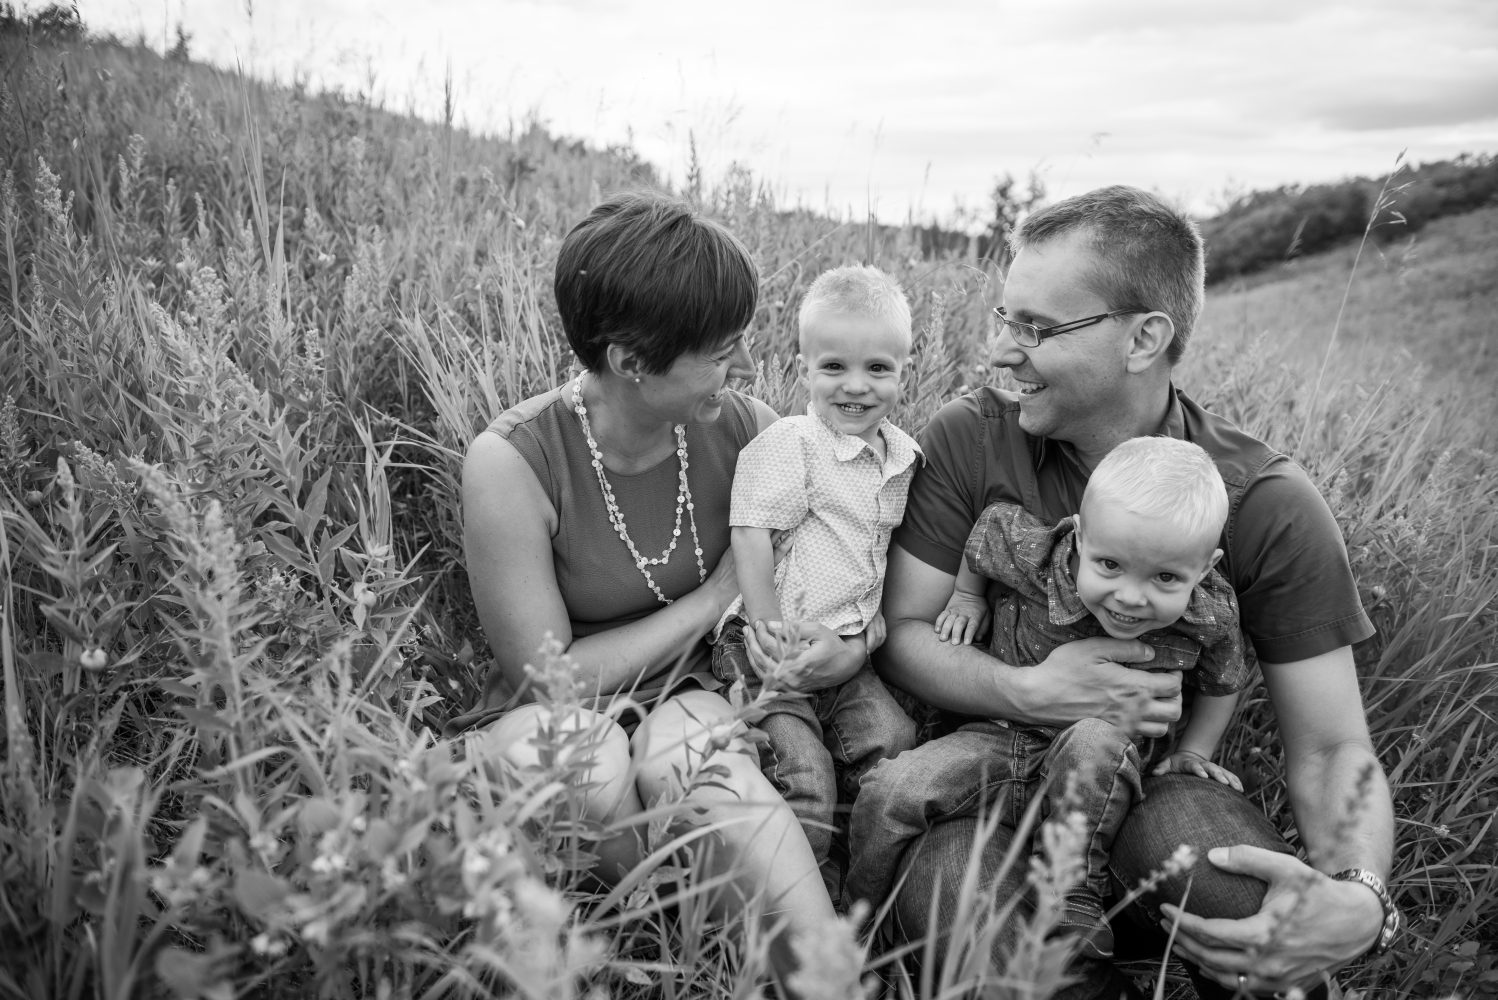 A family session with twin boys on Nose hill park in Calgary Alberta | 3Haus Photographics